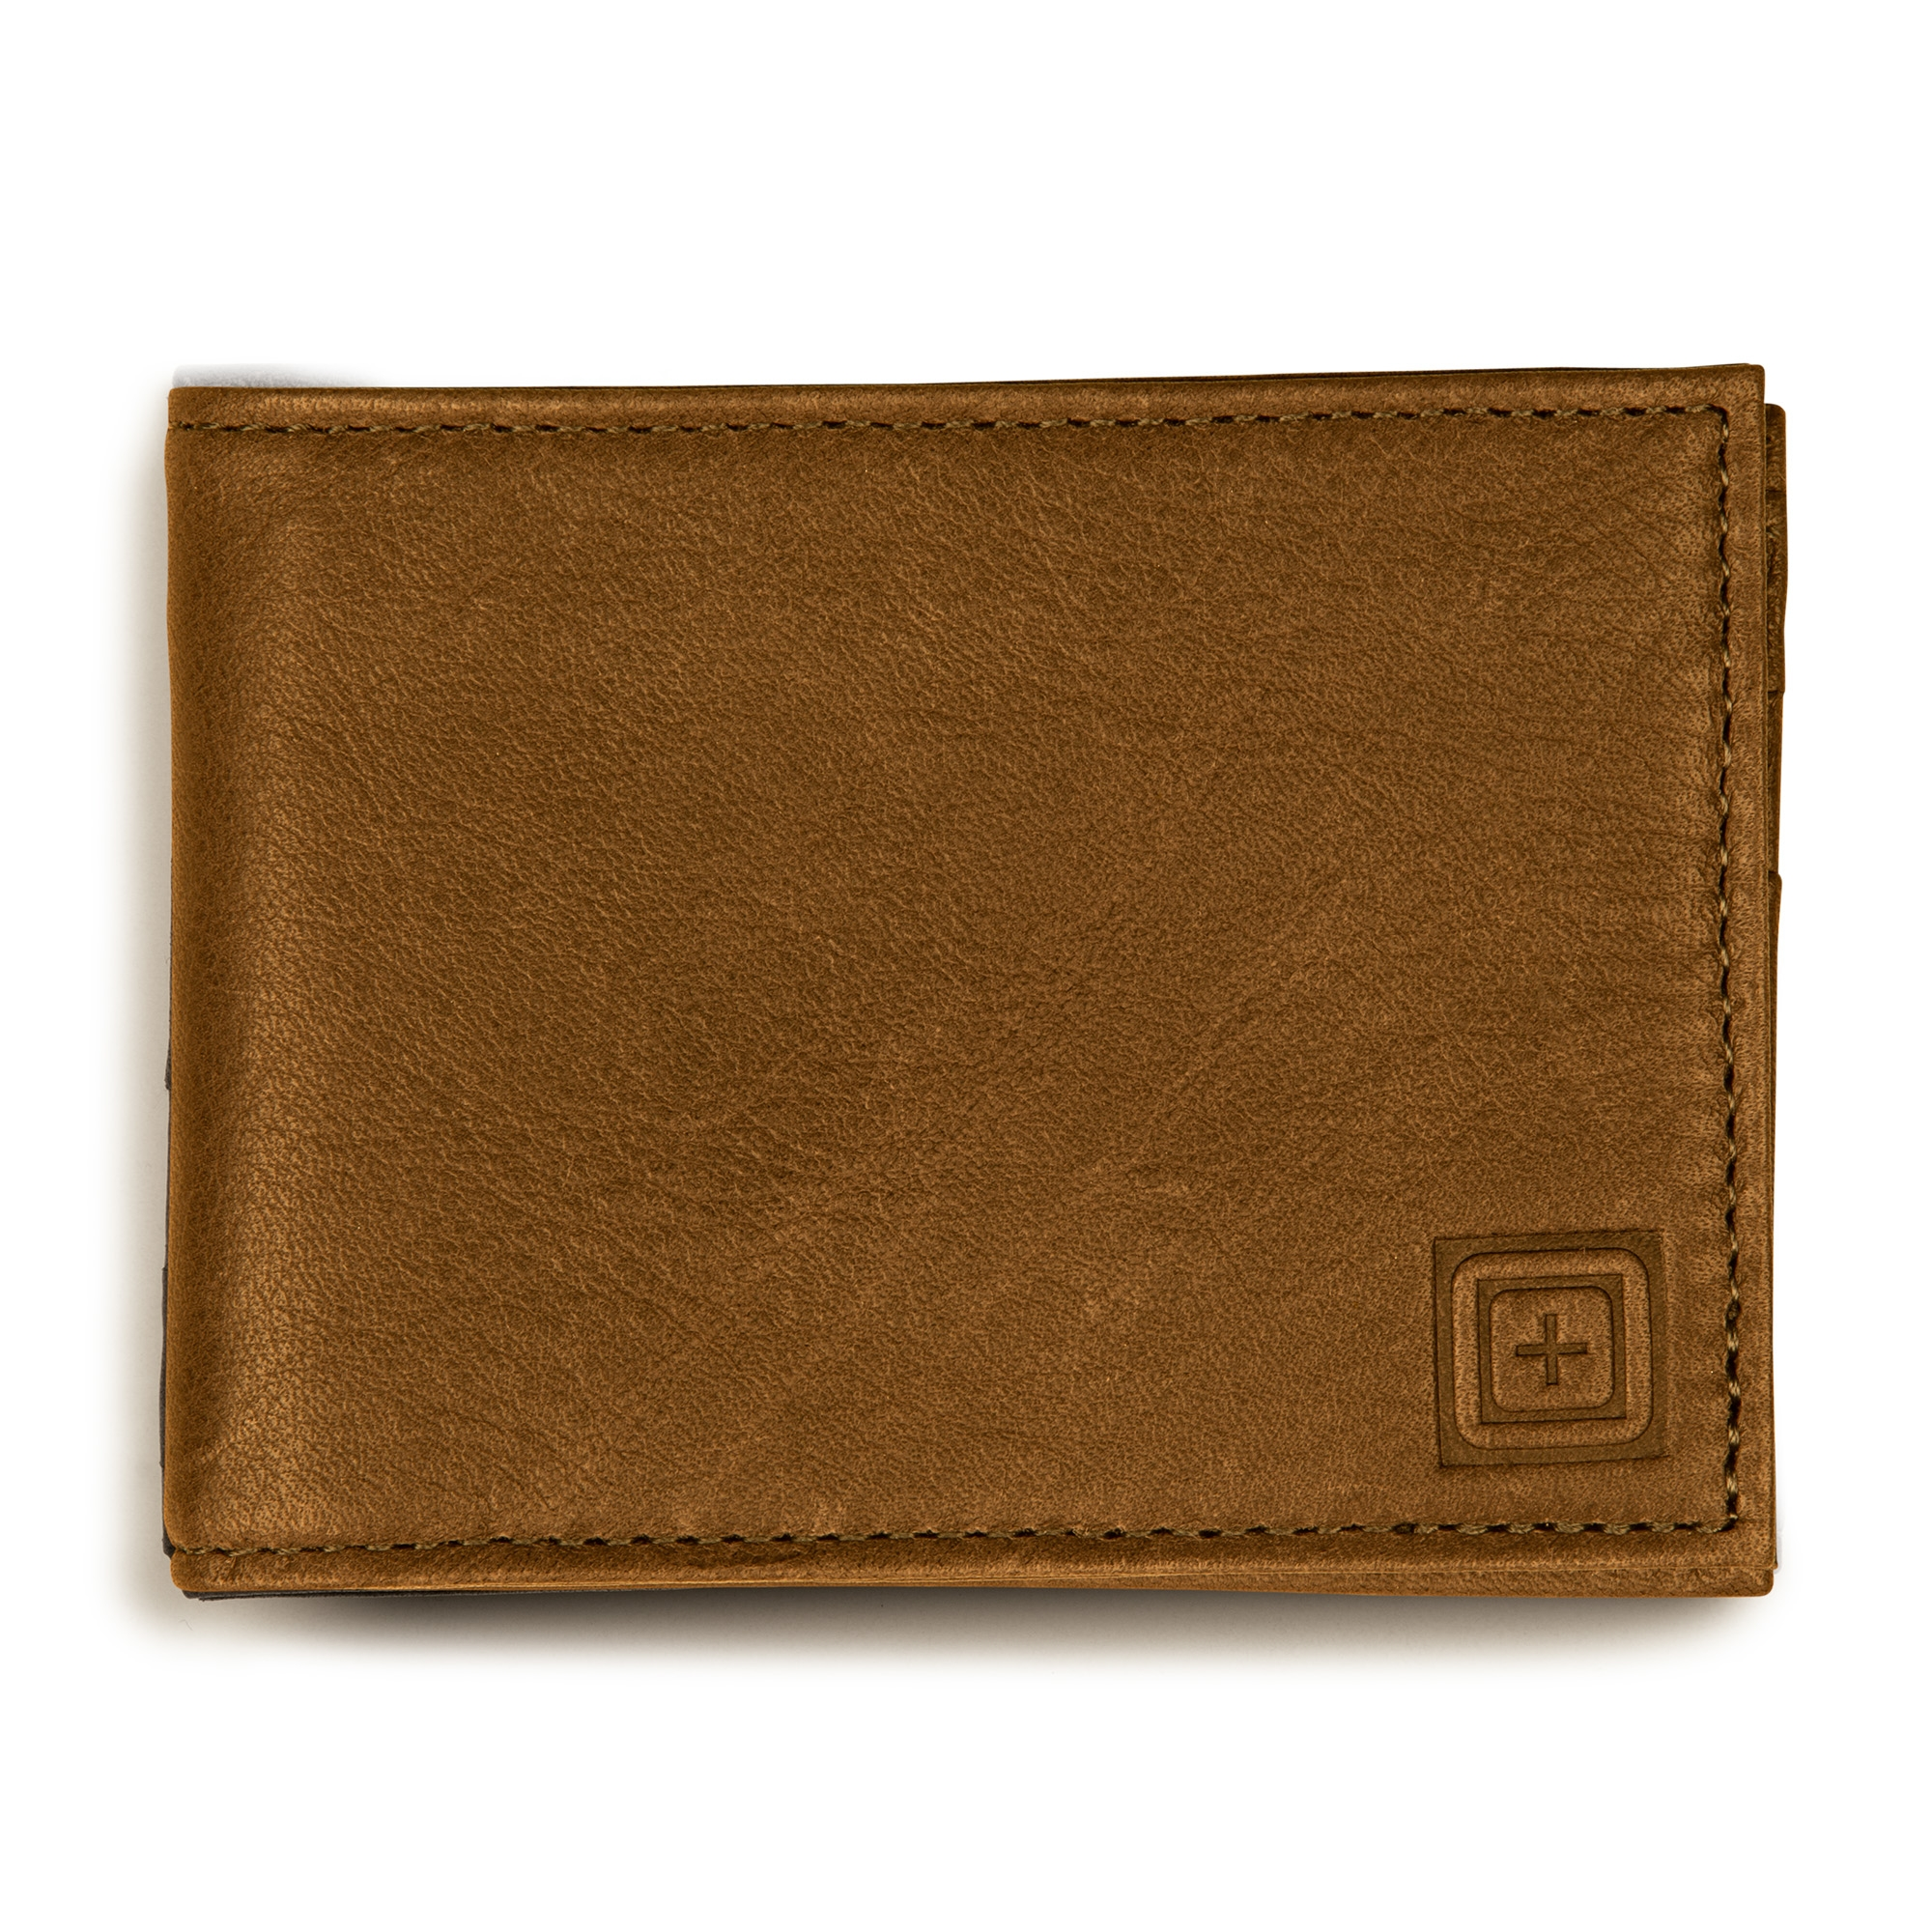 5.11 Tactical Meru Bifold Wallet